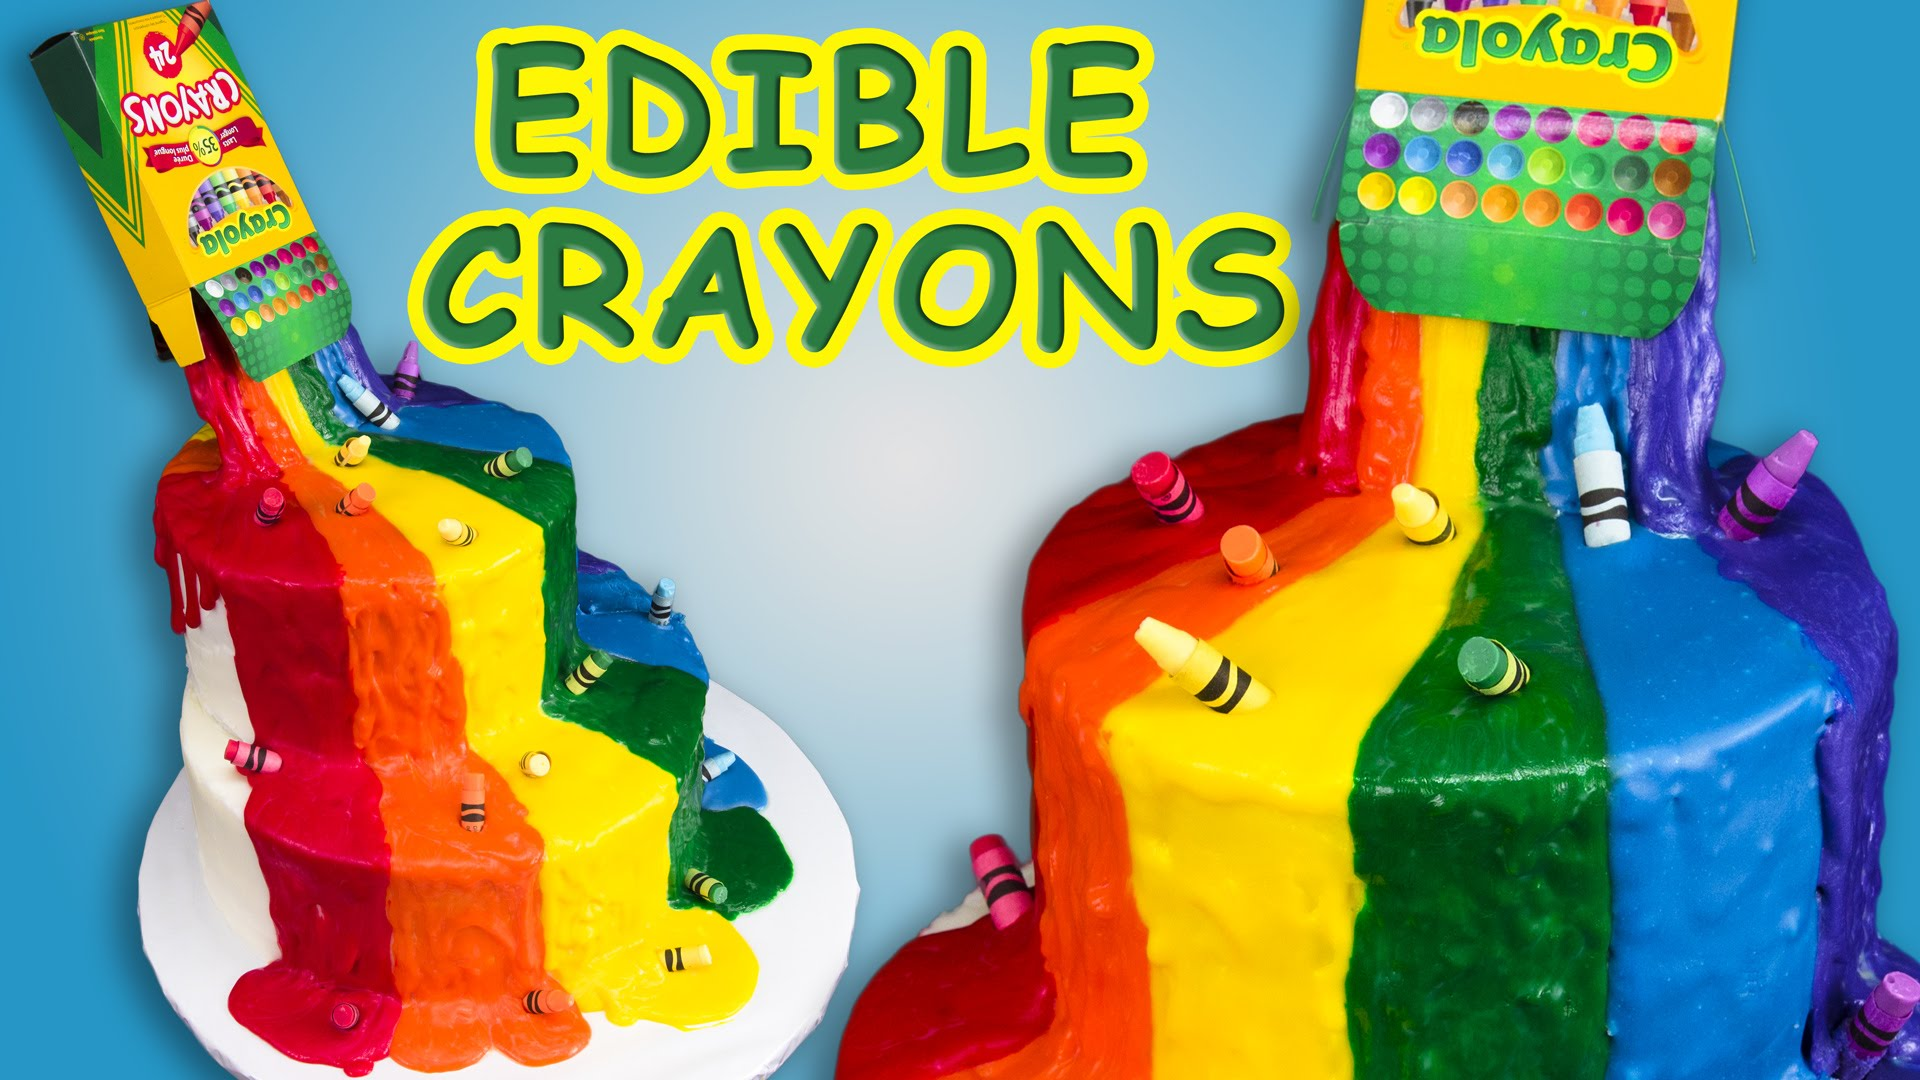 You Won't Believe What These Crayons Are Made of In This Crayon Waterfall Cake